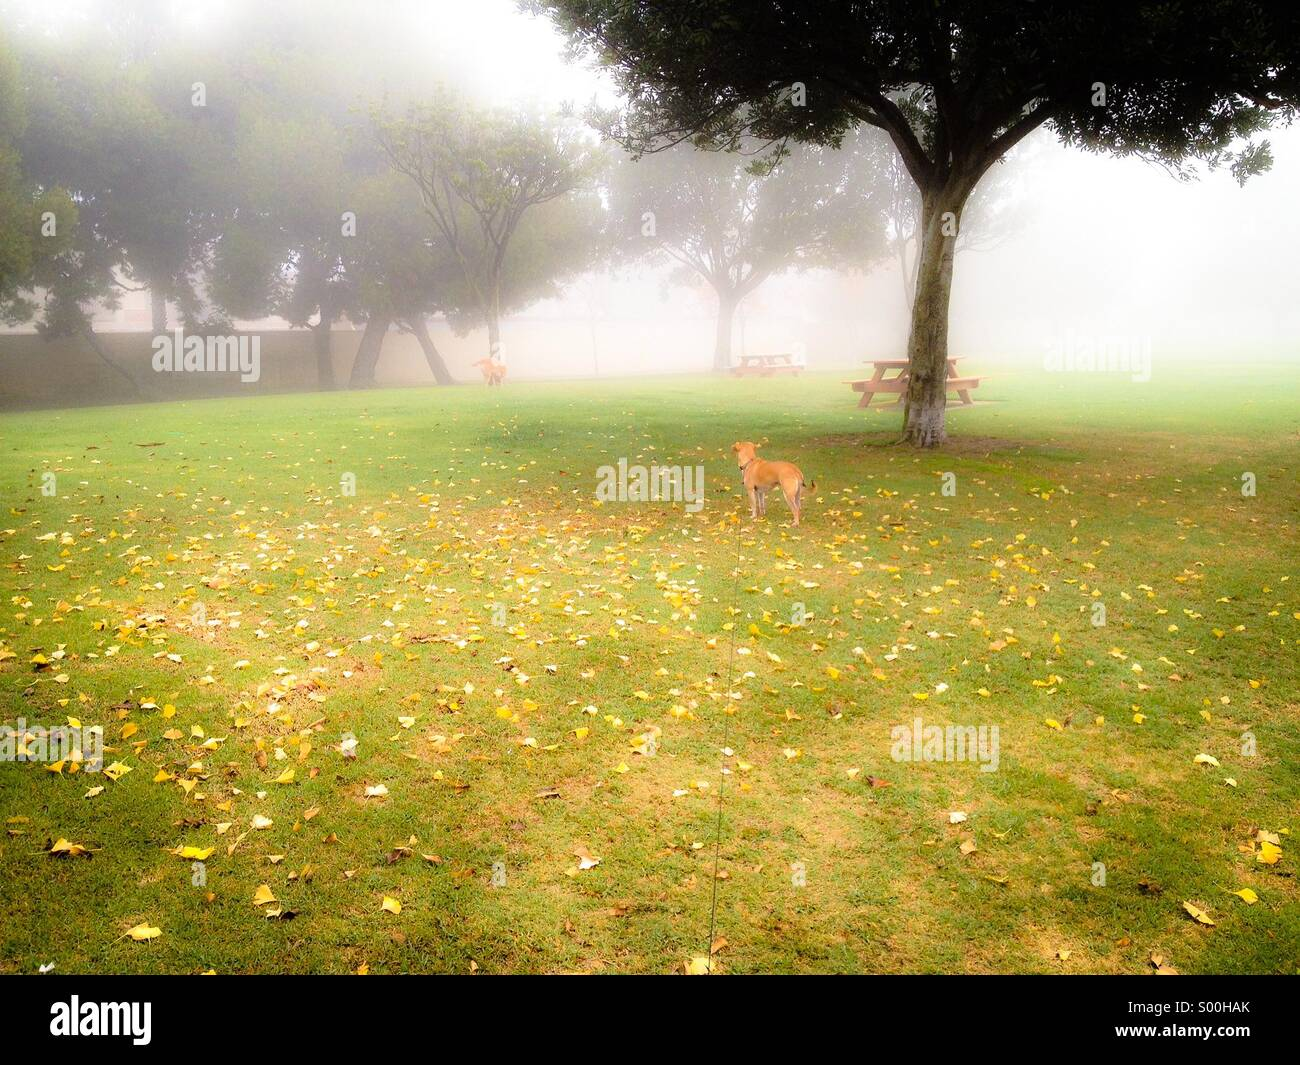 Terrier-Chihuahua mix dog looks on at Jindo mix at foggy park - Stock Image